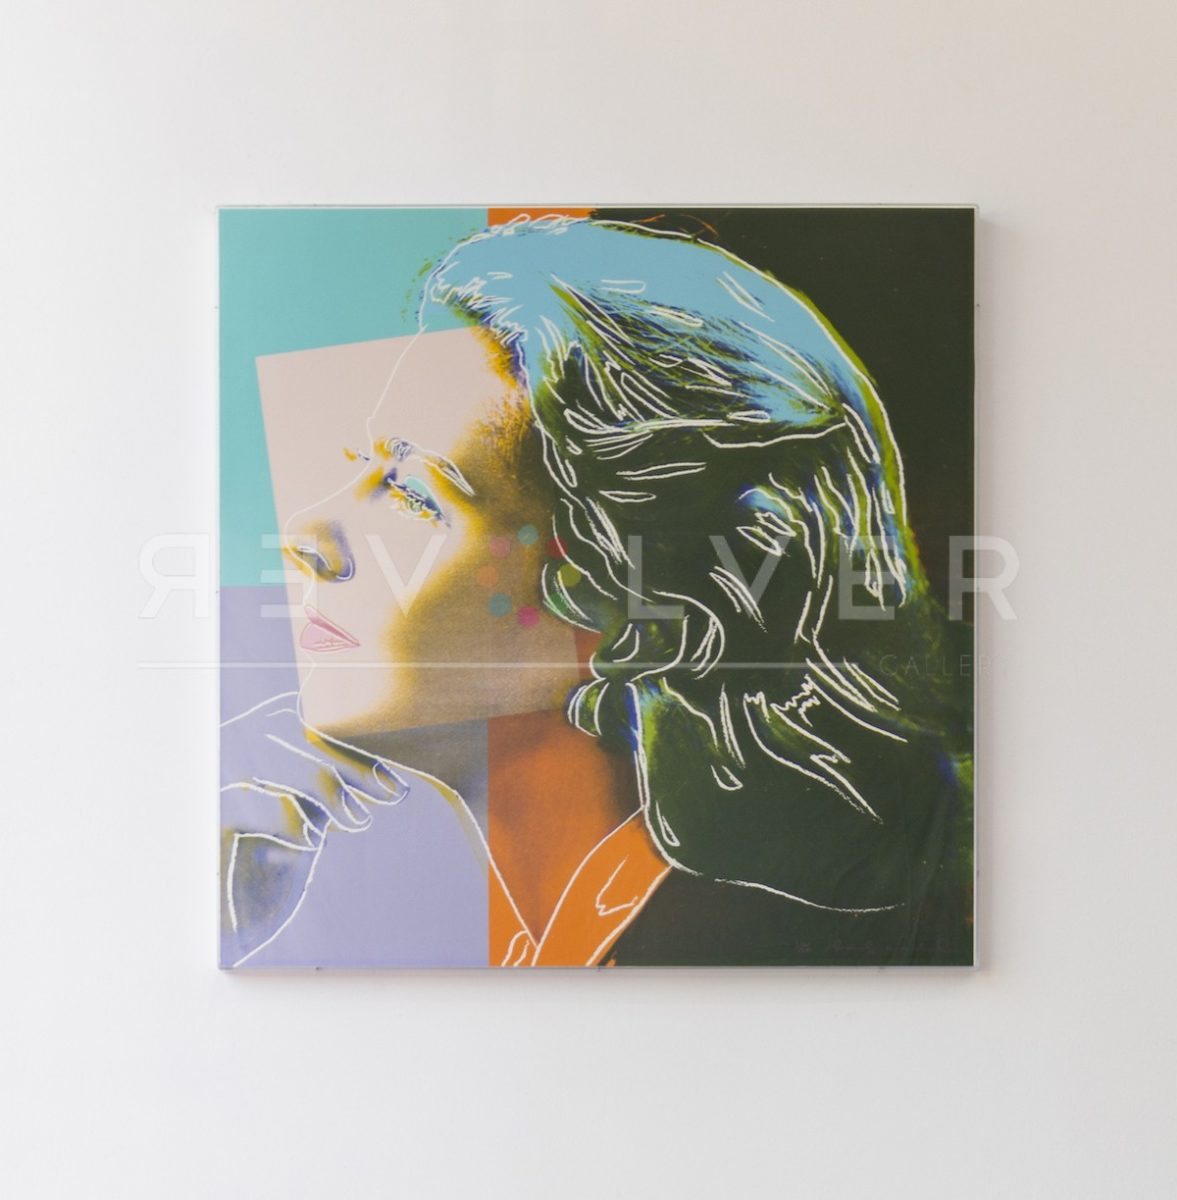 Andy Warhol Ingrid Bergman, Herself 313 screenprint framed and hanging on the wall.